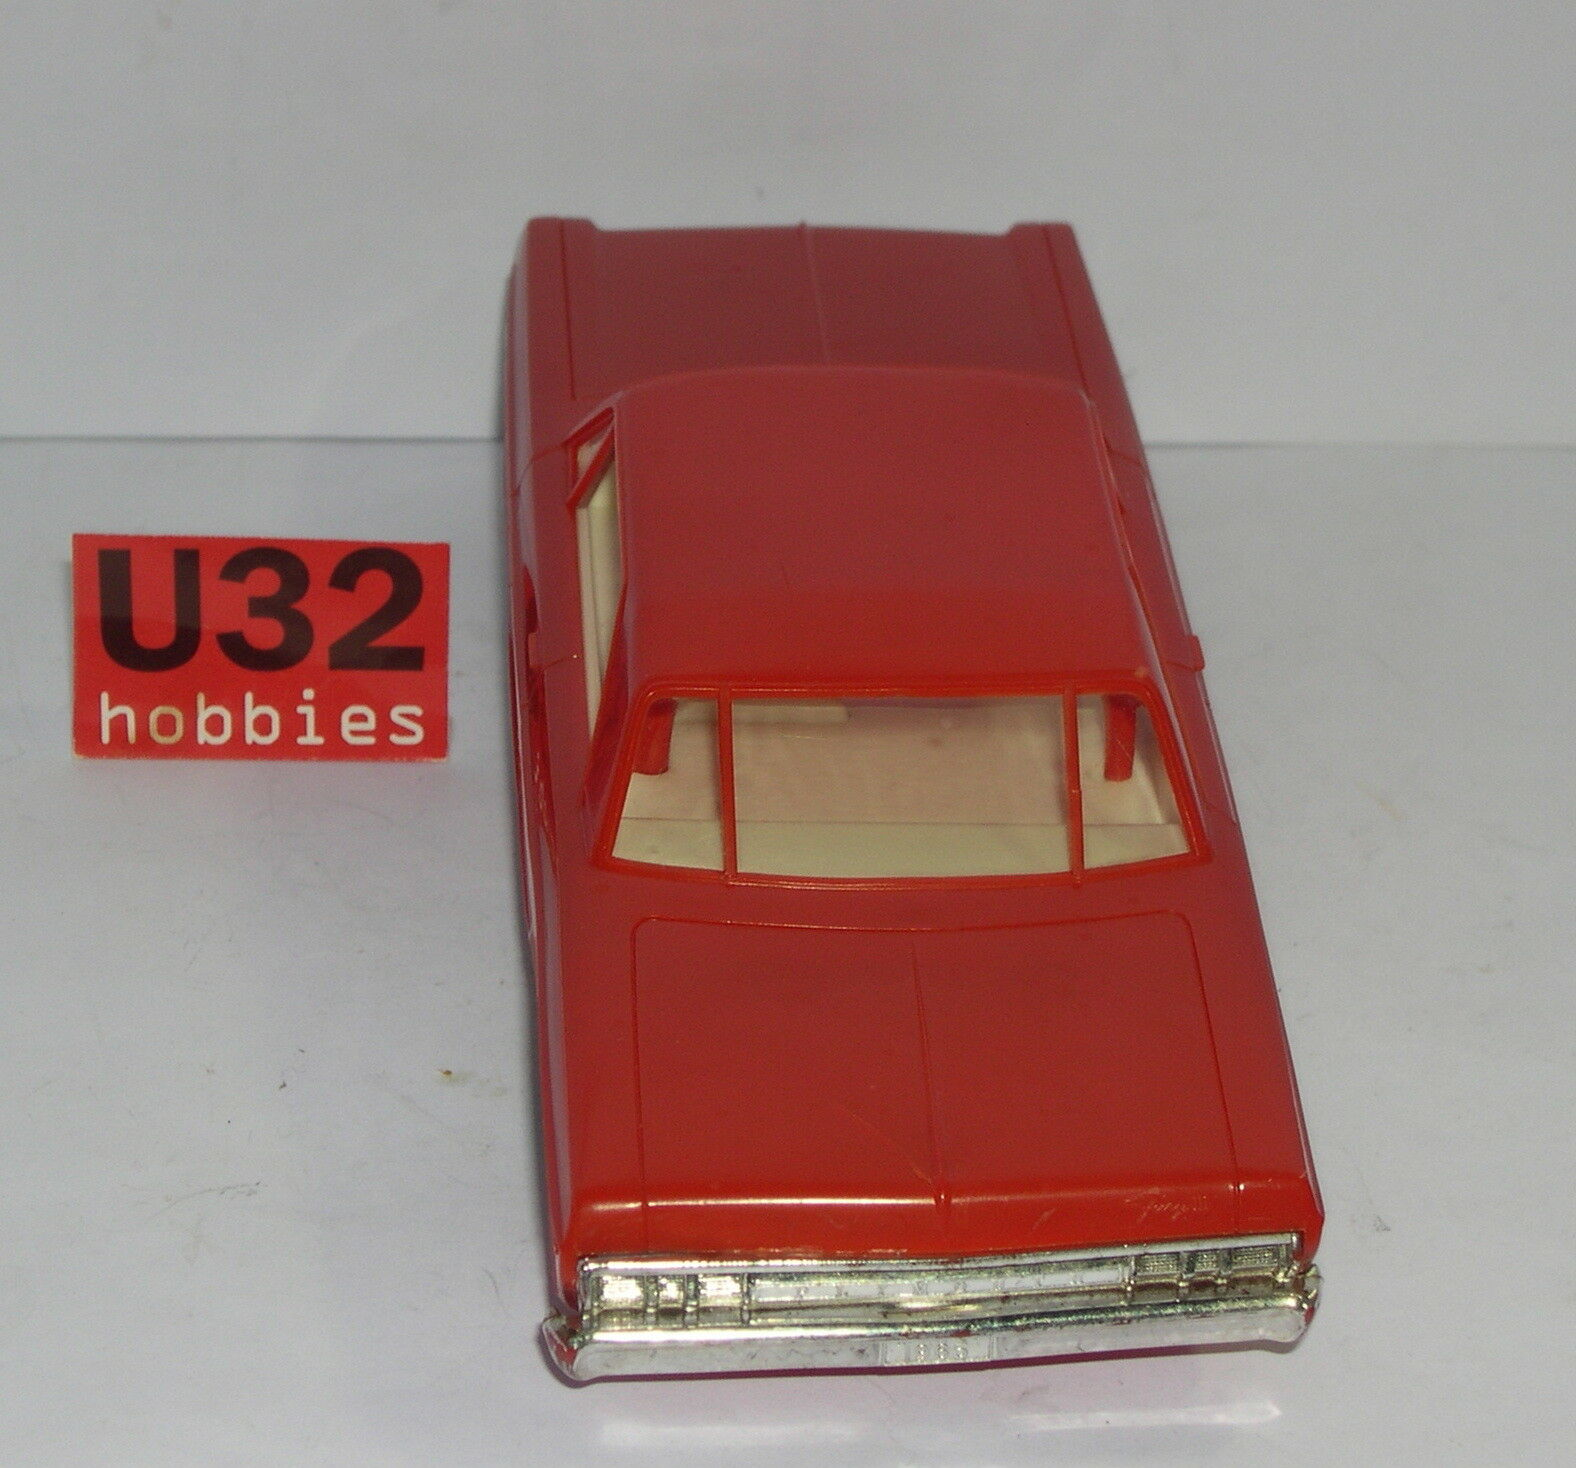 FN-IMC 203 PLYMOUTH FURY 1/32 COUPÉ ROT AUSGEZEICHNET ZUSTAND UNBOXED 1/32 FURY 05e7f0